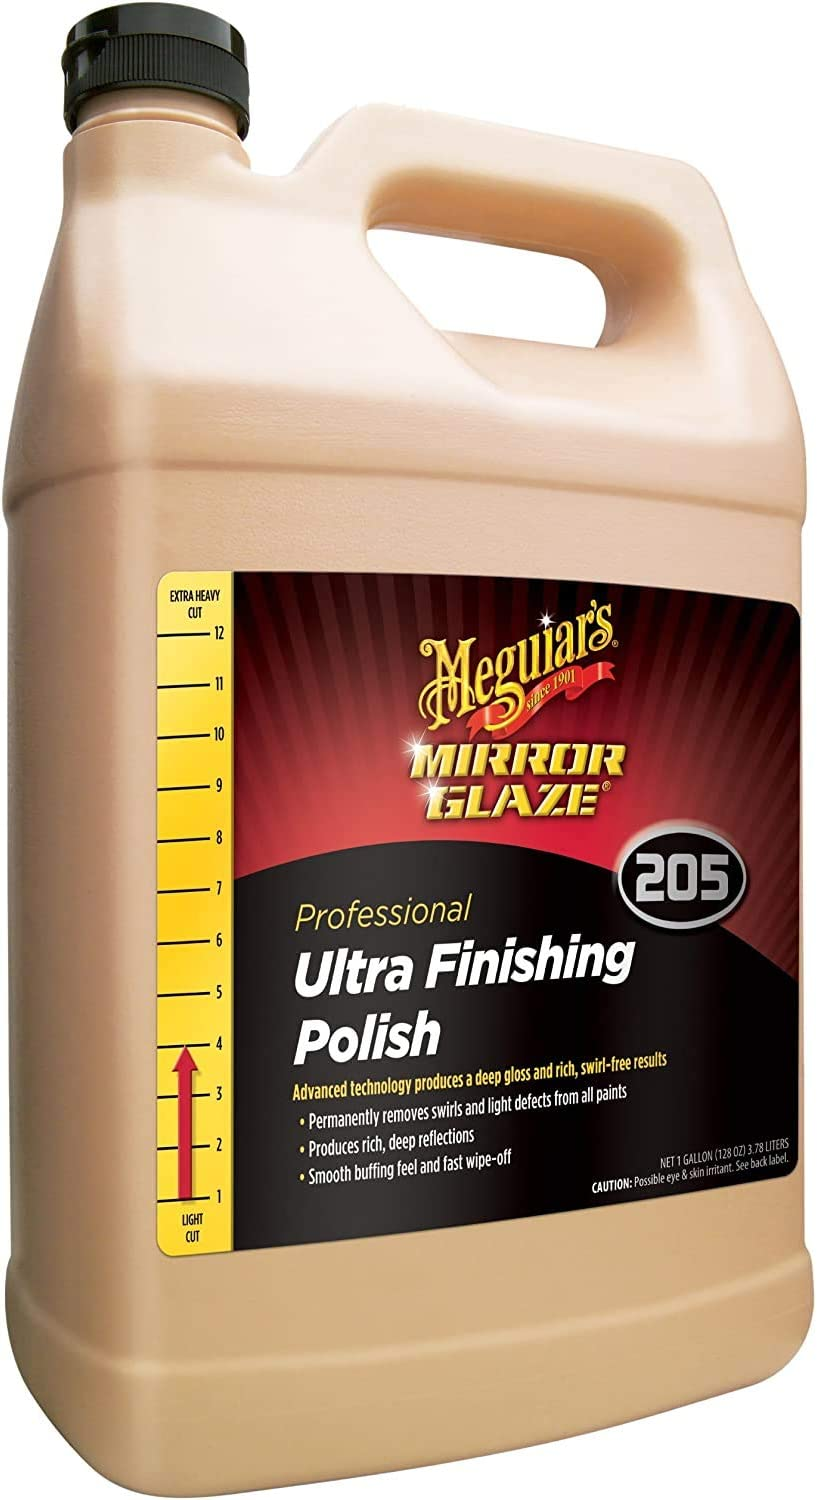 Meguiar's M20501 All items in the store Mirror sold out Glaze Ultra Polish 1 Gallon Finishing